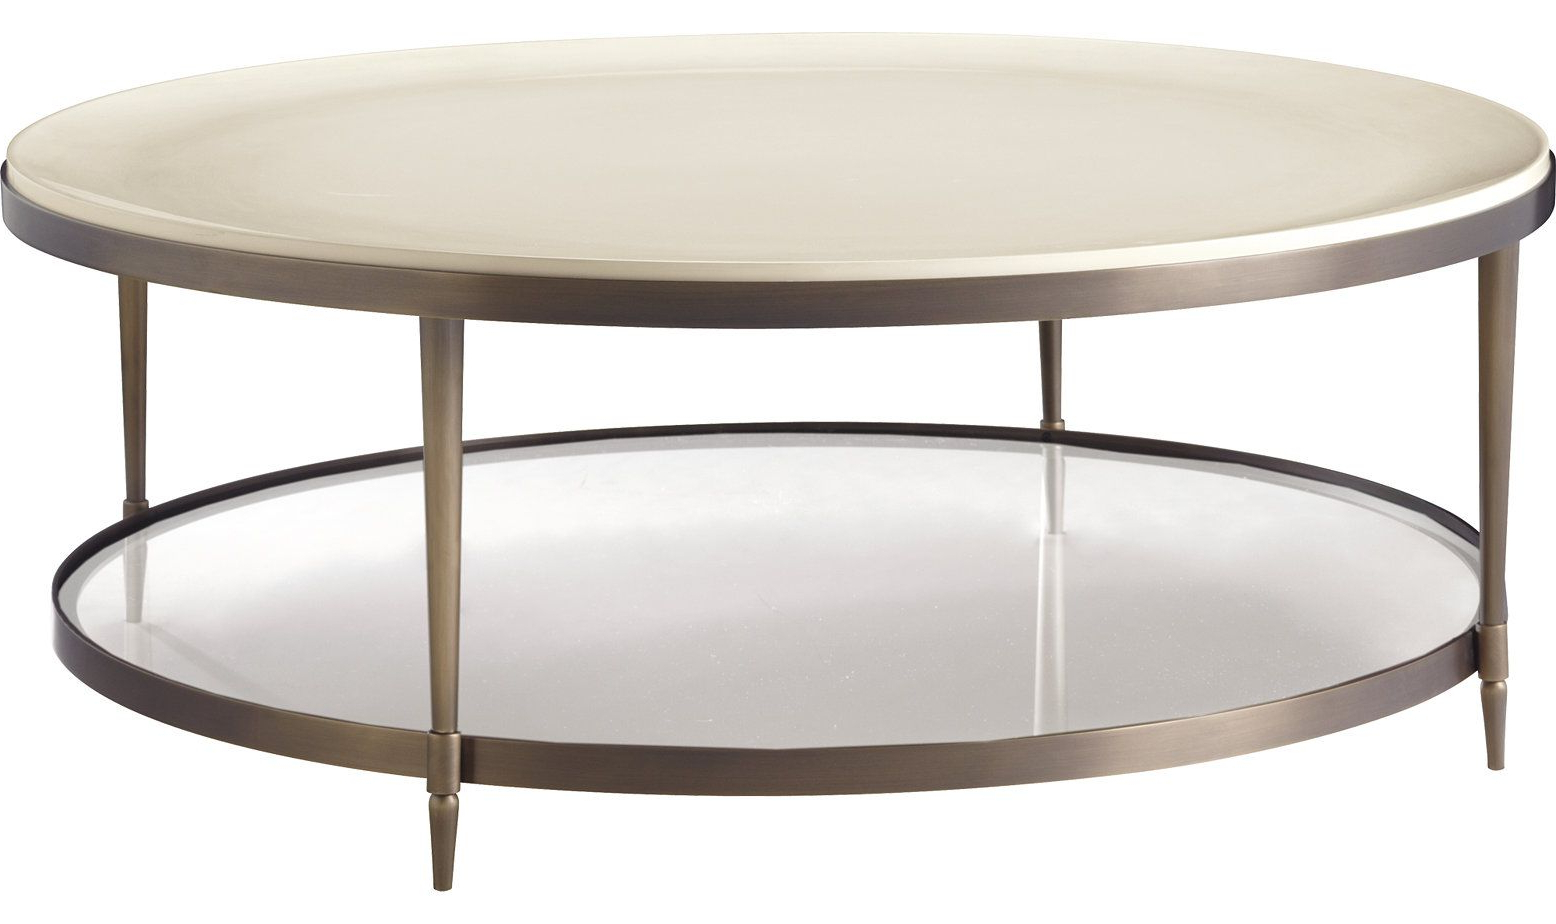 Widely Used Swell Round Coffee Tables In Inspiredthe Beauty Of A Cultured Pearl, The Oberon Cocktail (View 19 of 20)